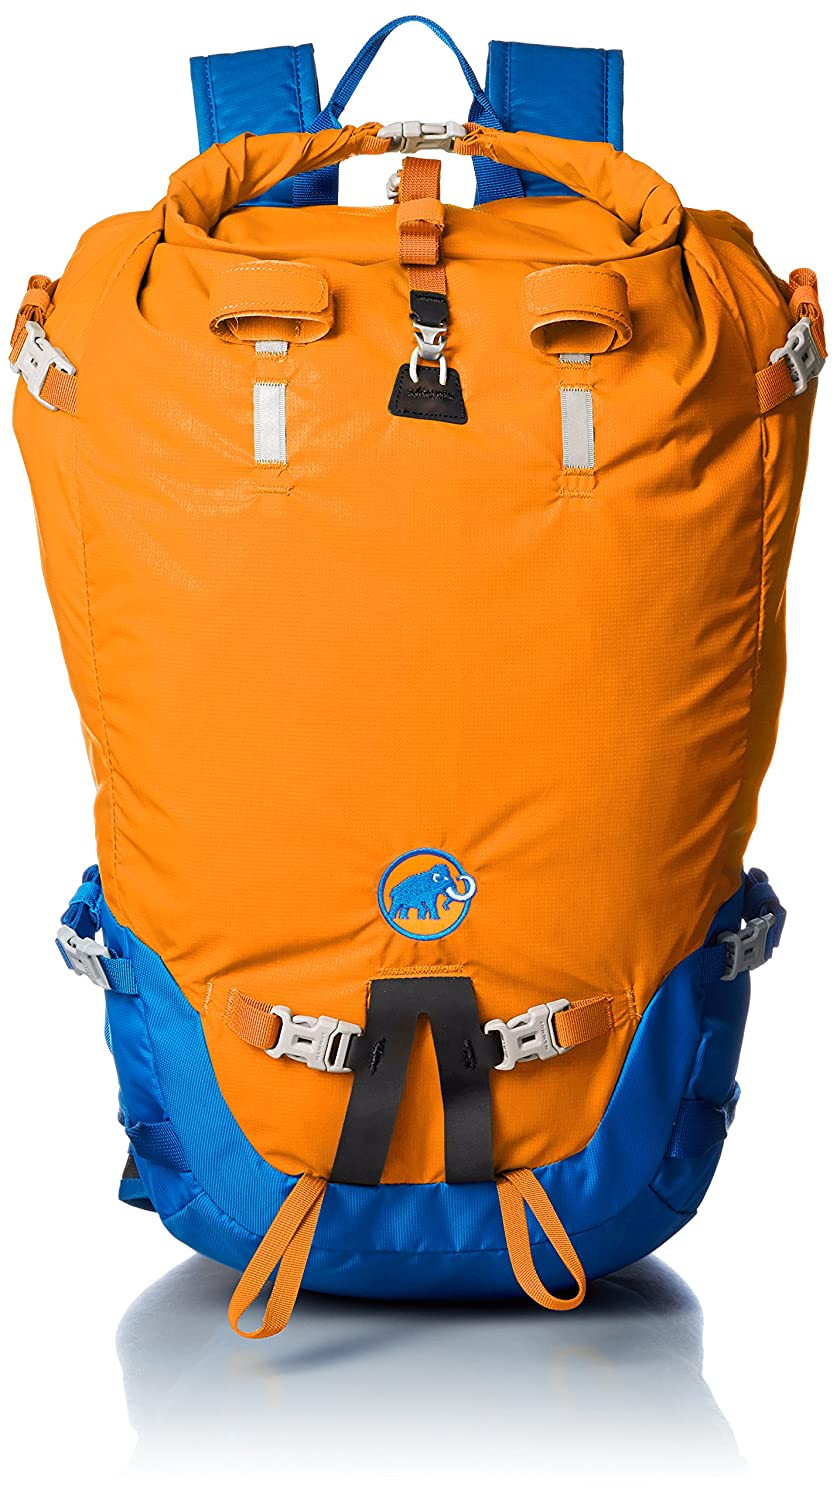 Amazon.com : Mammut Trion Light 28+ sunrise/dcyan 28 liter : Sports & Outdoors